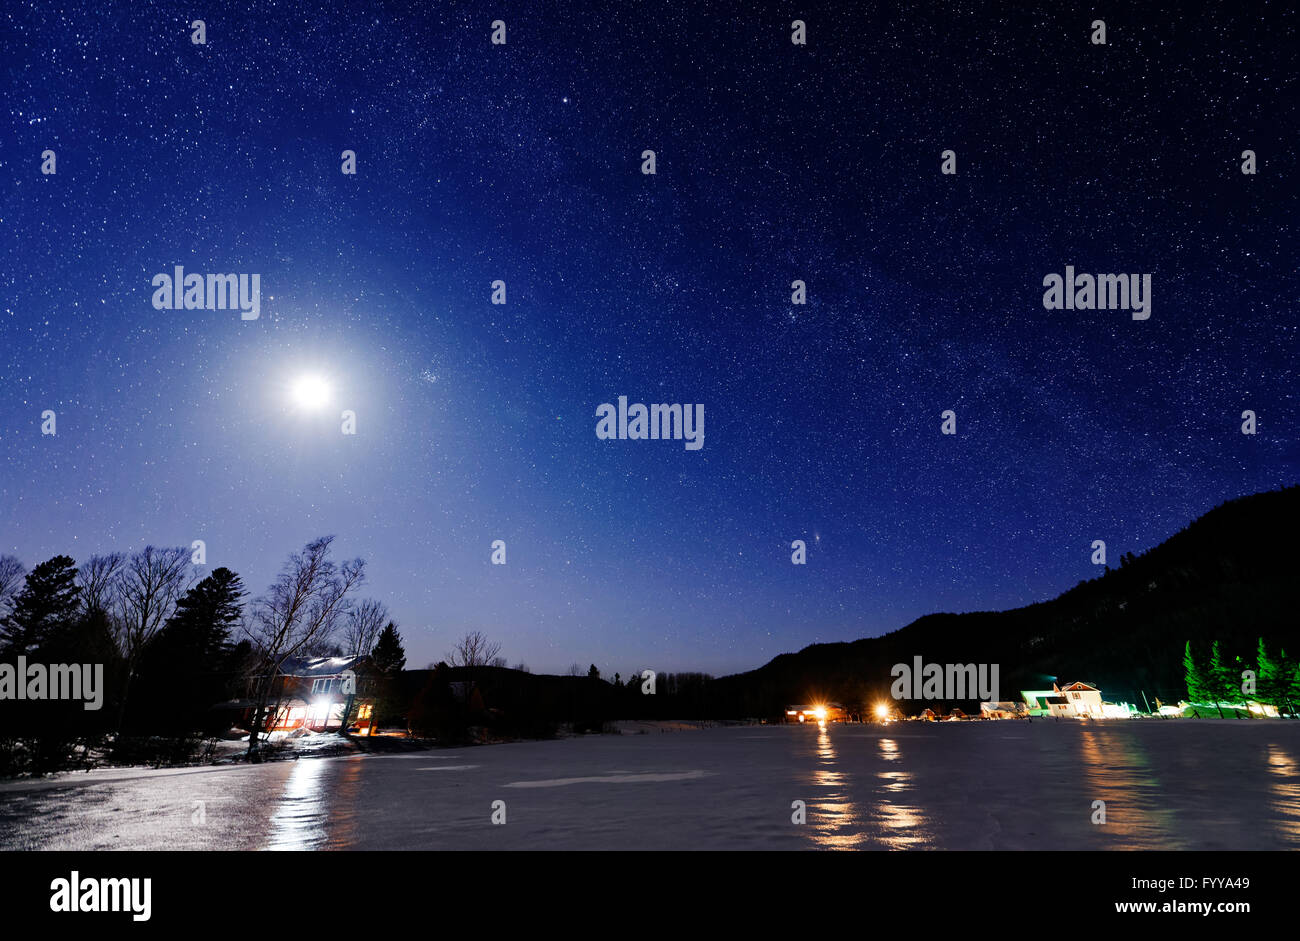 Starry winter night in Quebec - Stock Image